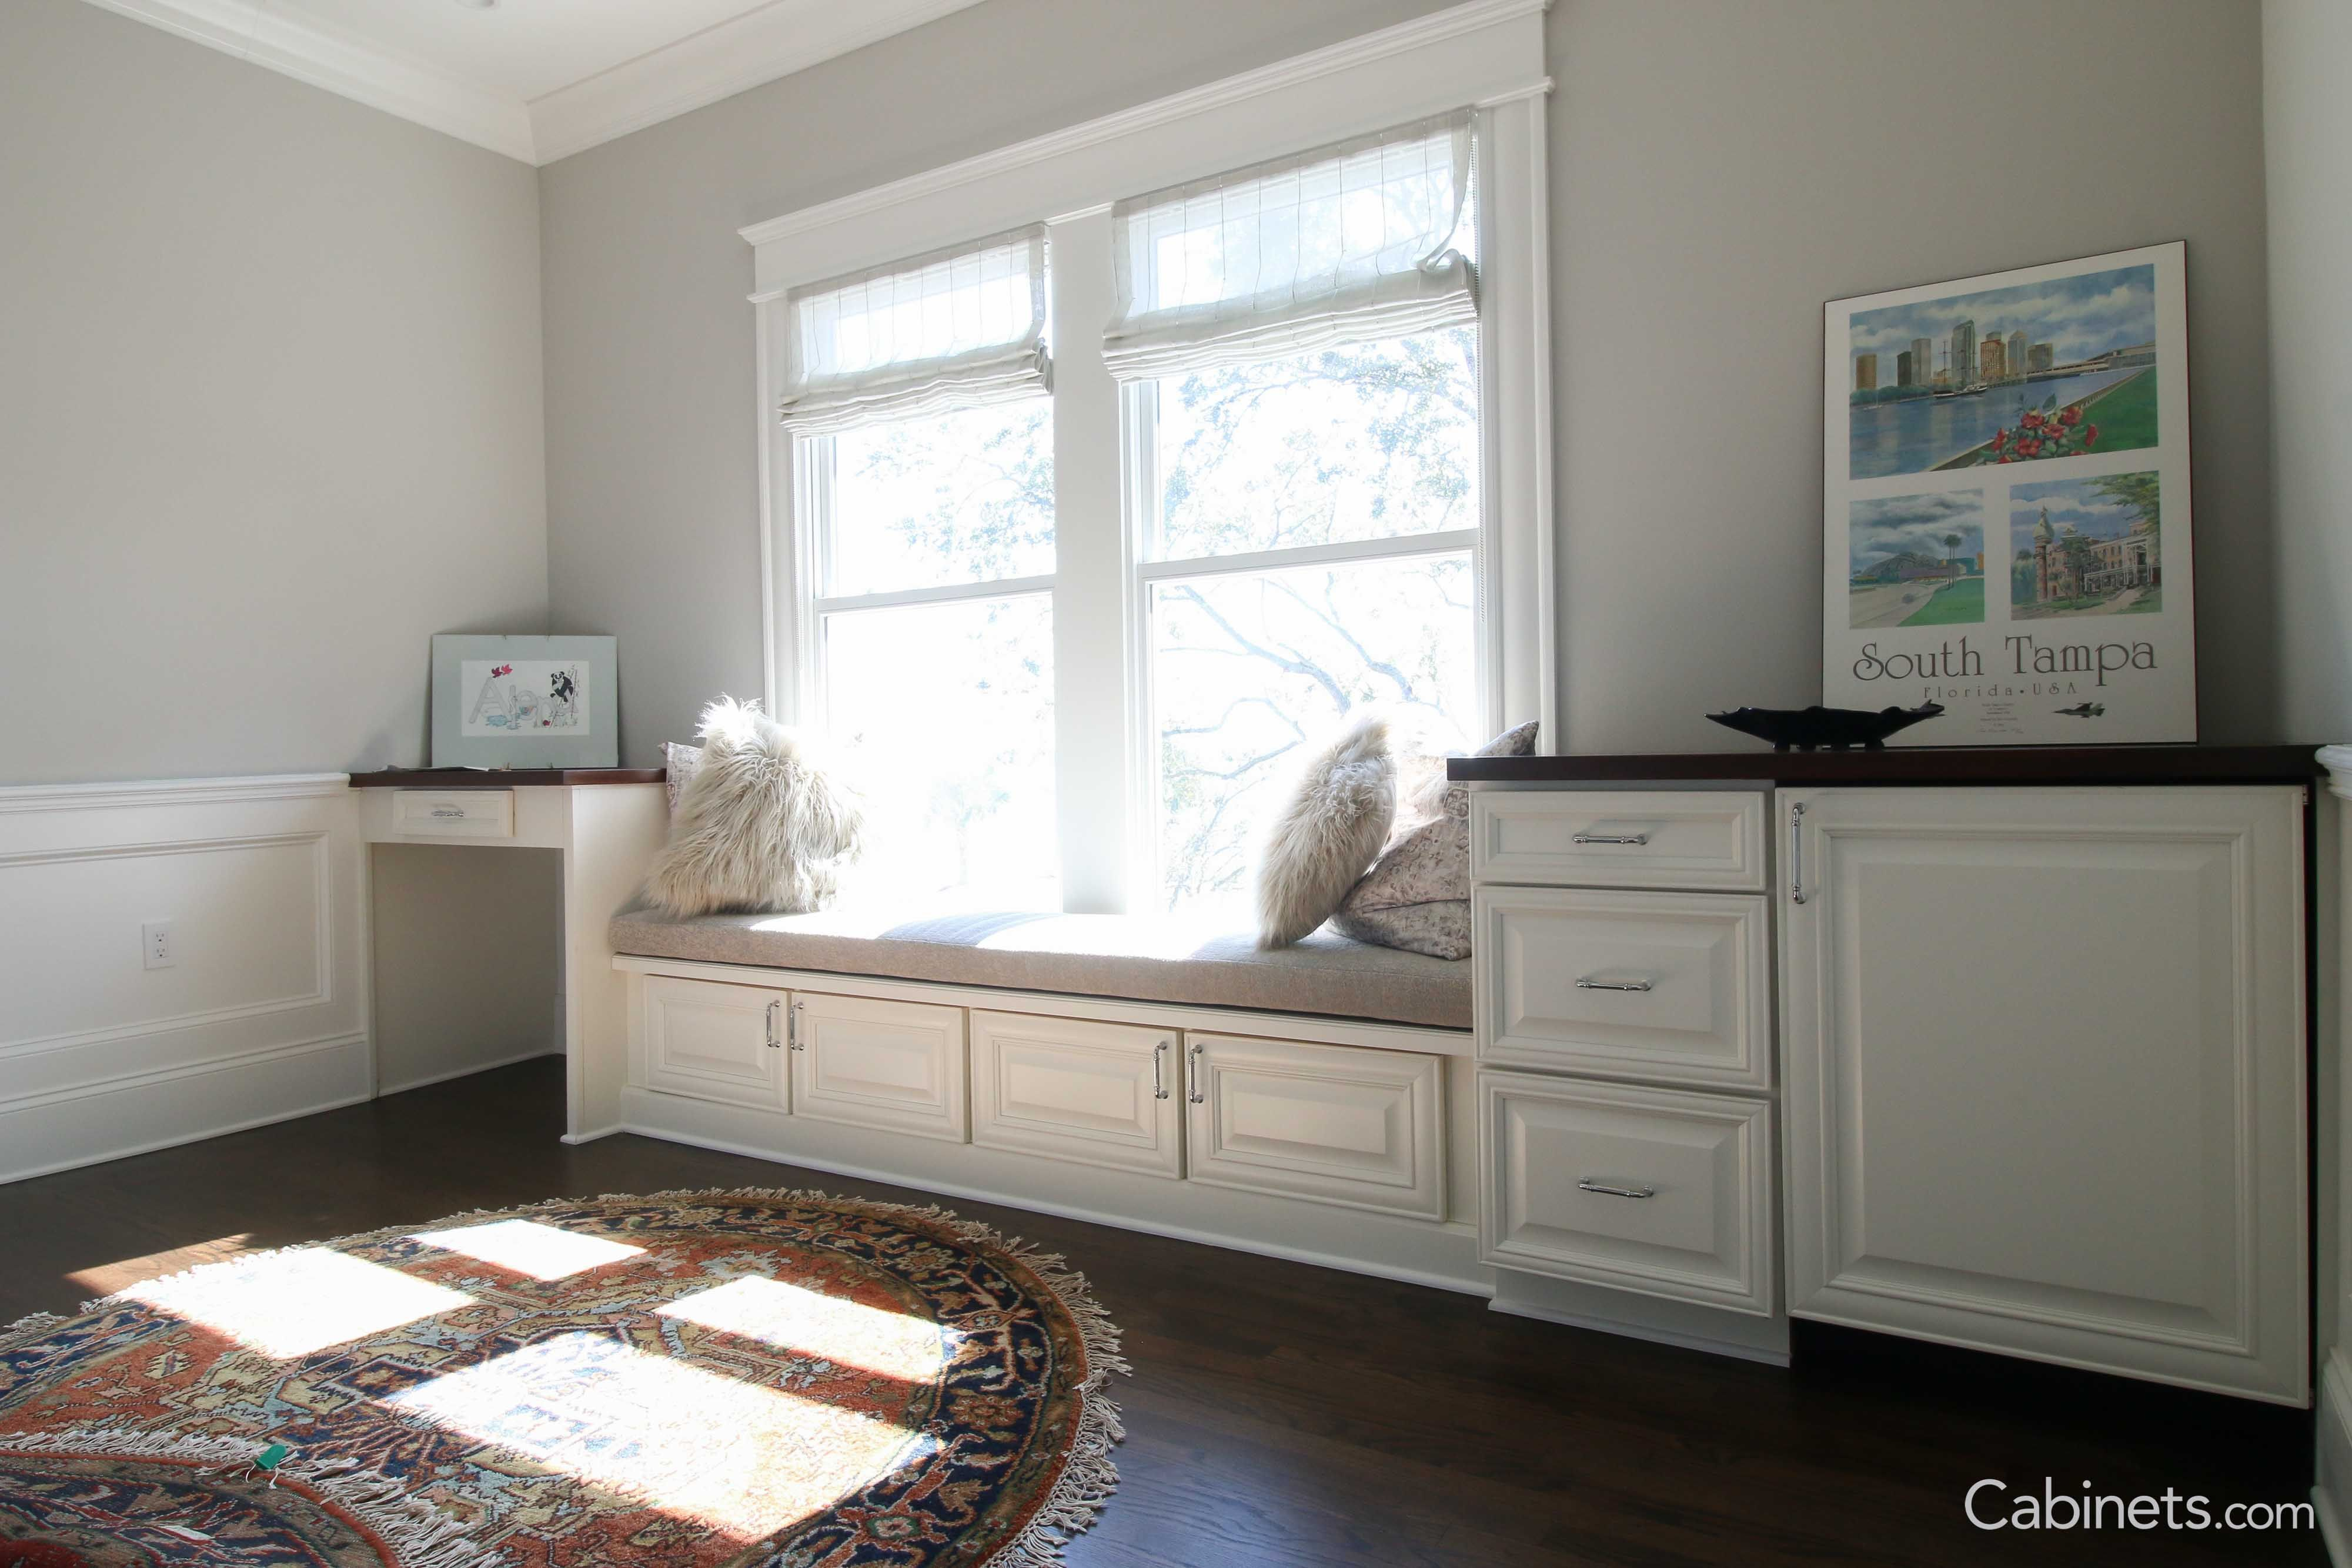 Grab A Book And Claim Your Window Seat With Calming Natural Light And Bright Cabinets Window Seat Built In Desk Cabinetry